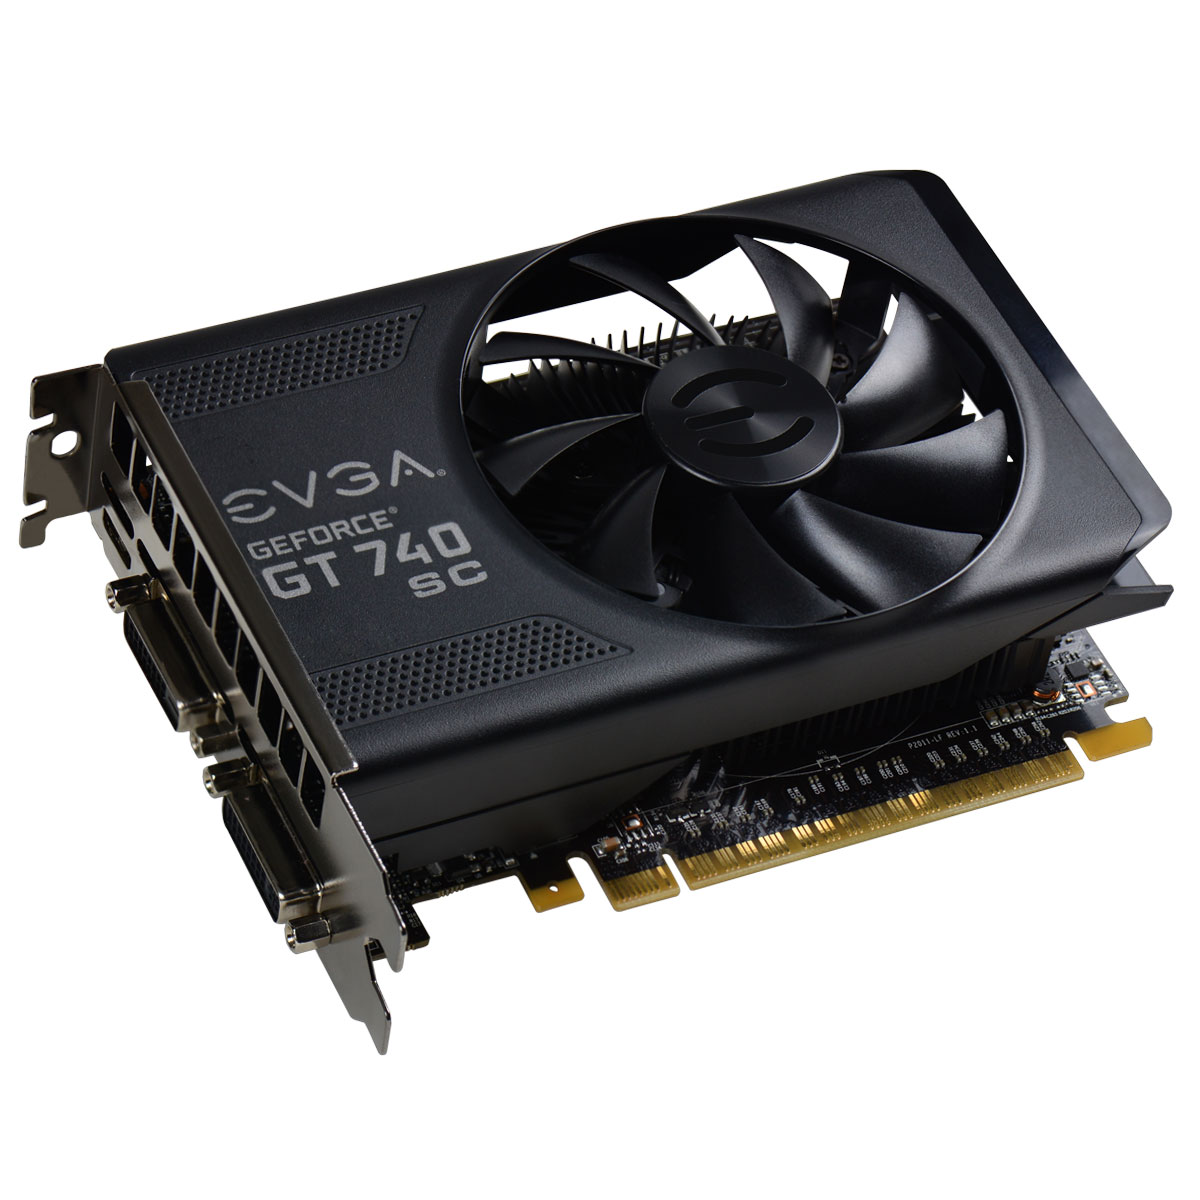 EVGA 4GB GeForce GT740 SC DDR5 PCIe 04G-P4-2744-KR